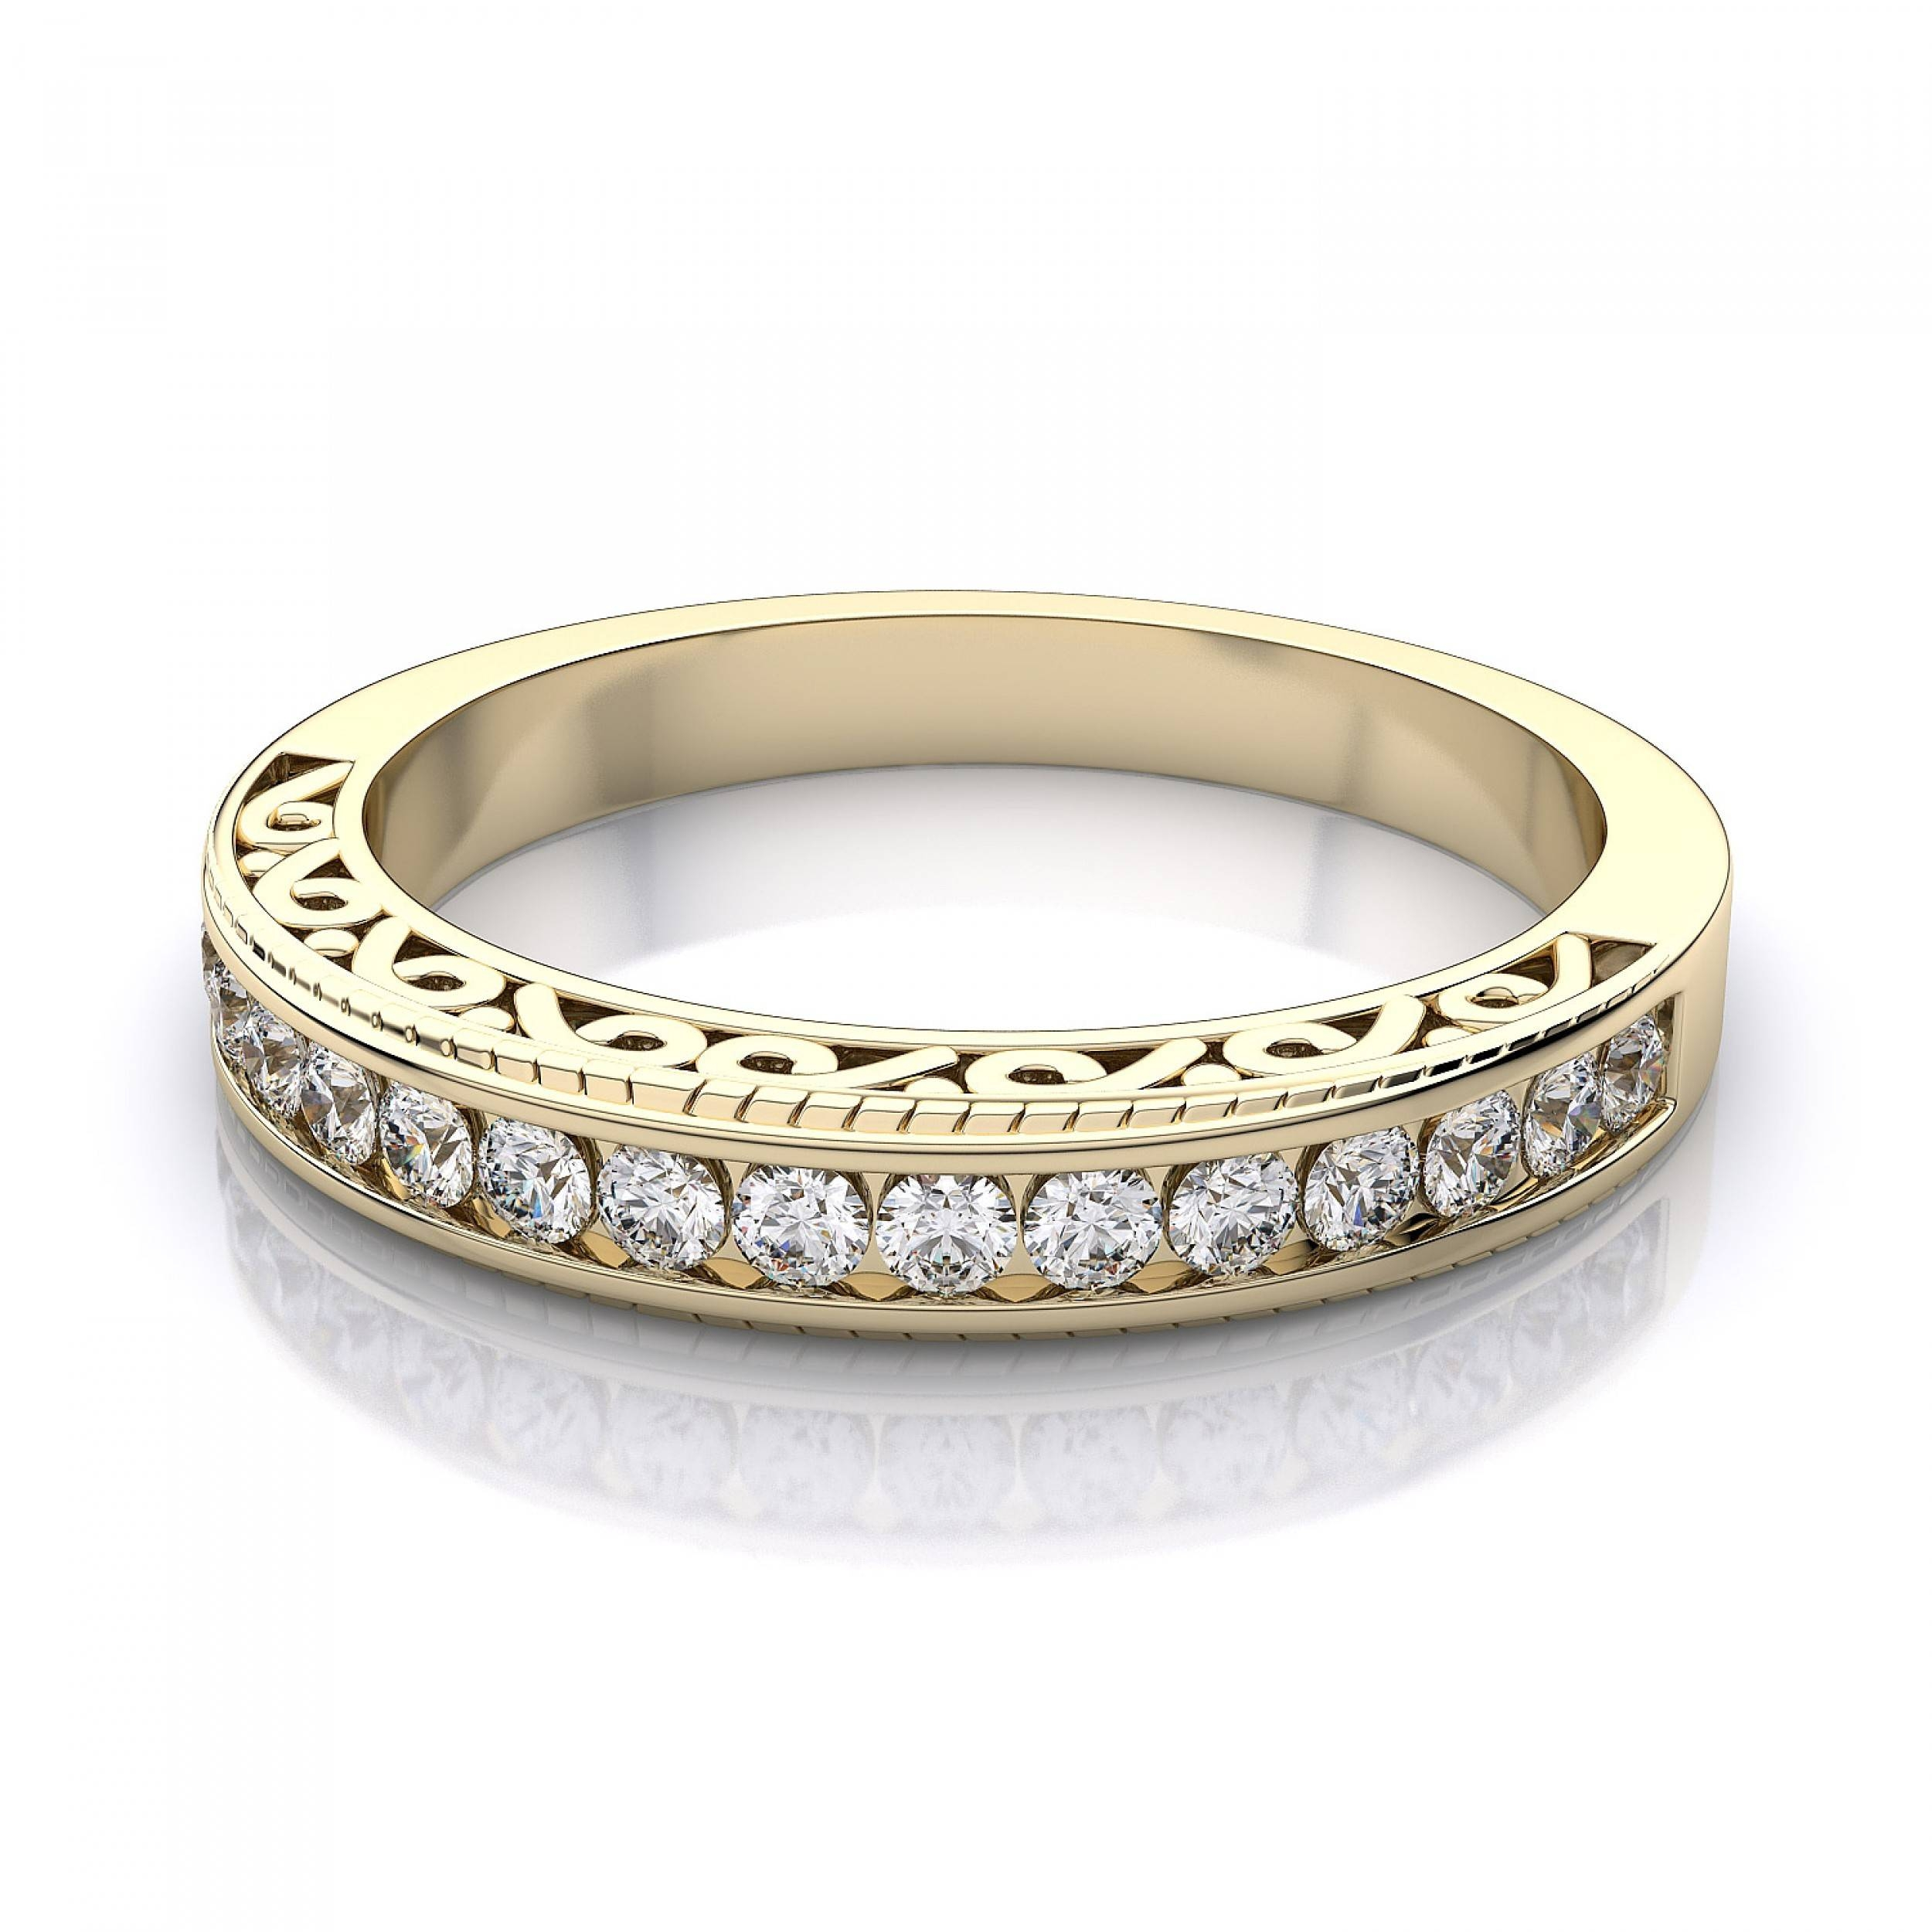 Set Vintage Diamond Wedding Band In 14k Yellow Gold I1 I Regarding Classic Gold Wedding Rings (View 3 of 15)